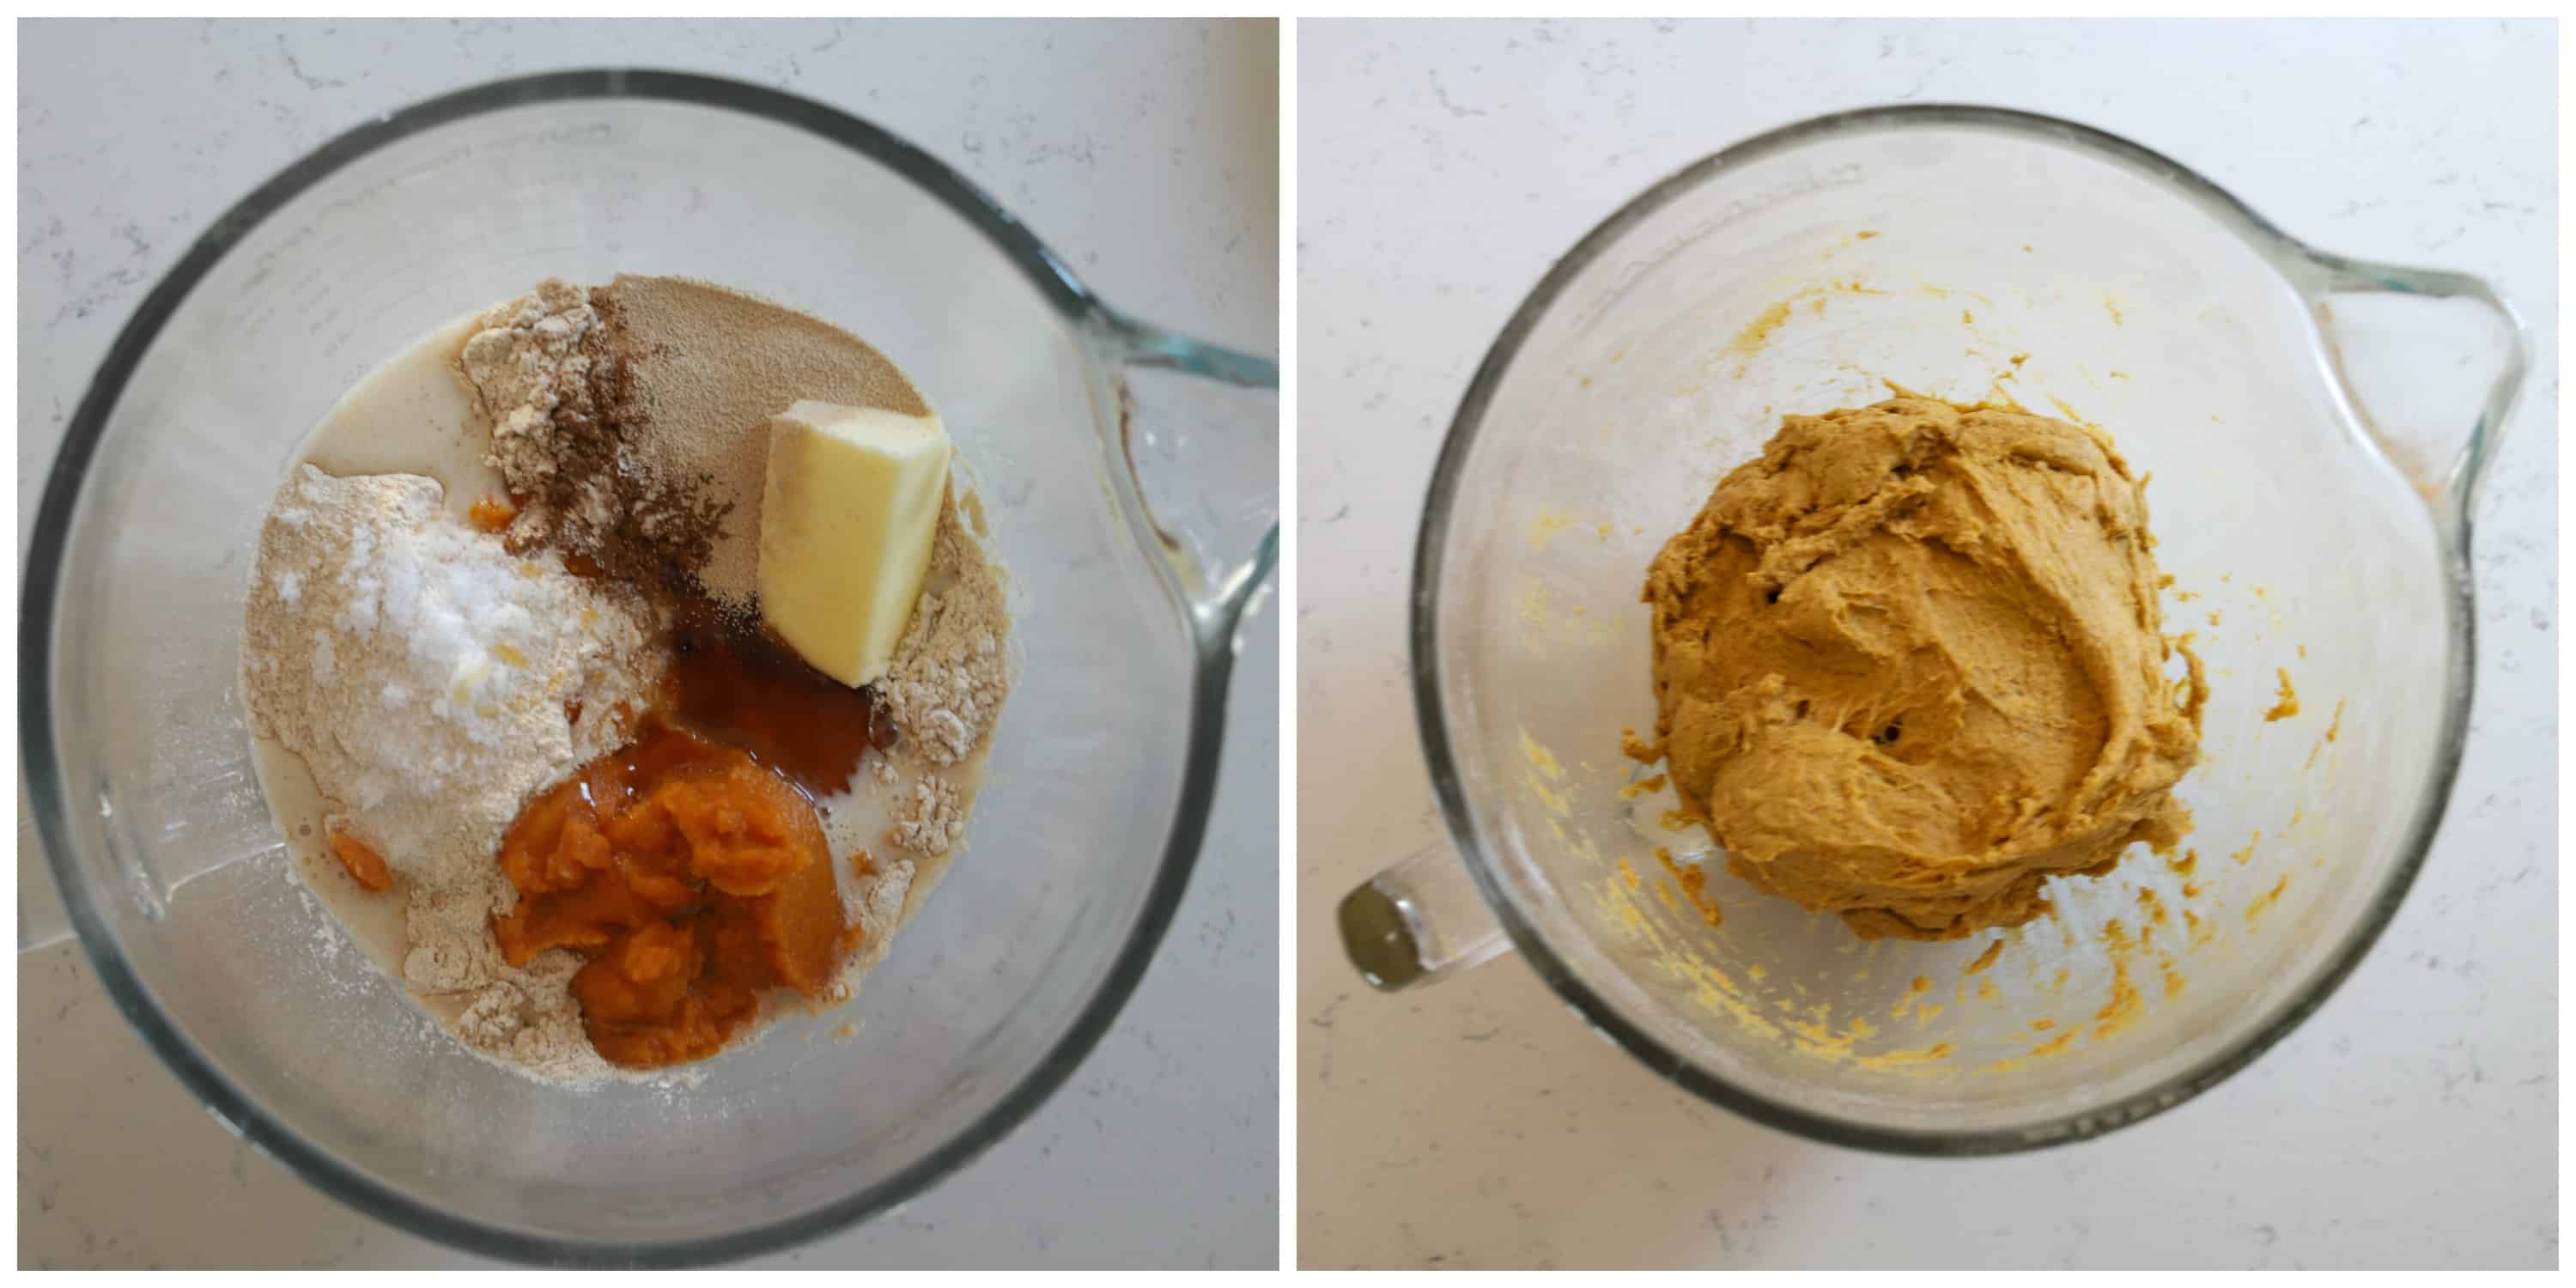 side by side photos of pumpkin dough in a bowl unmixed, and mixed